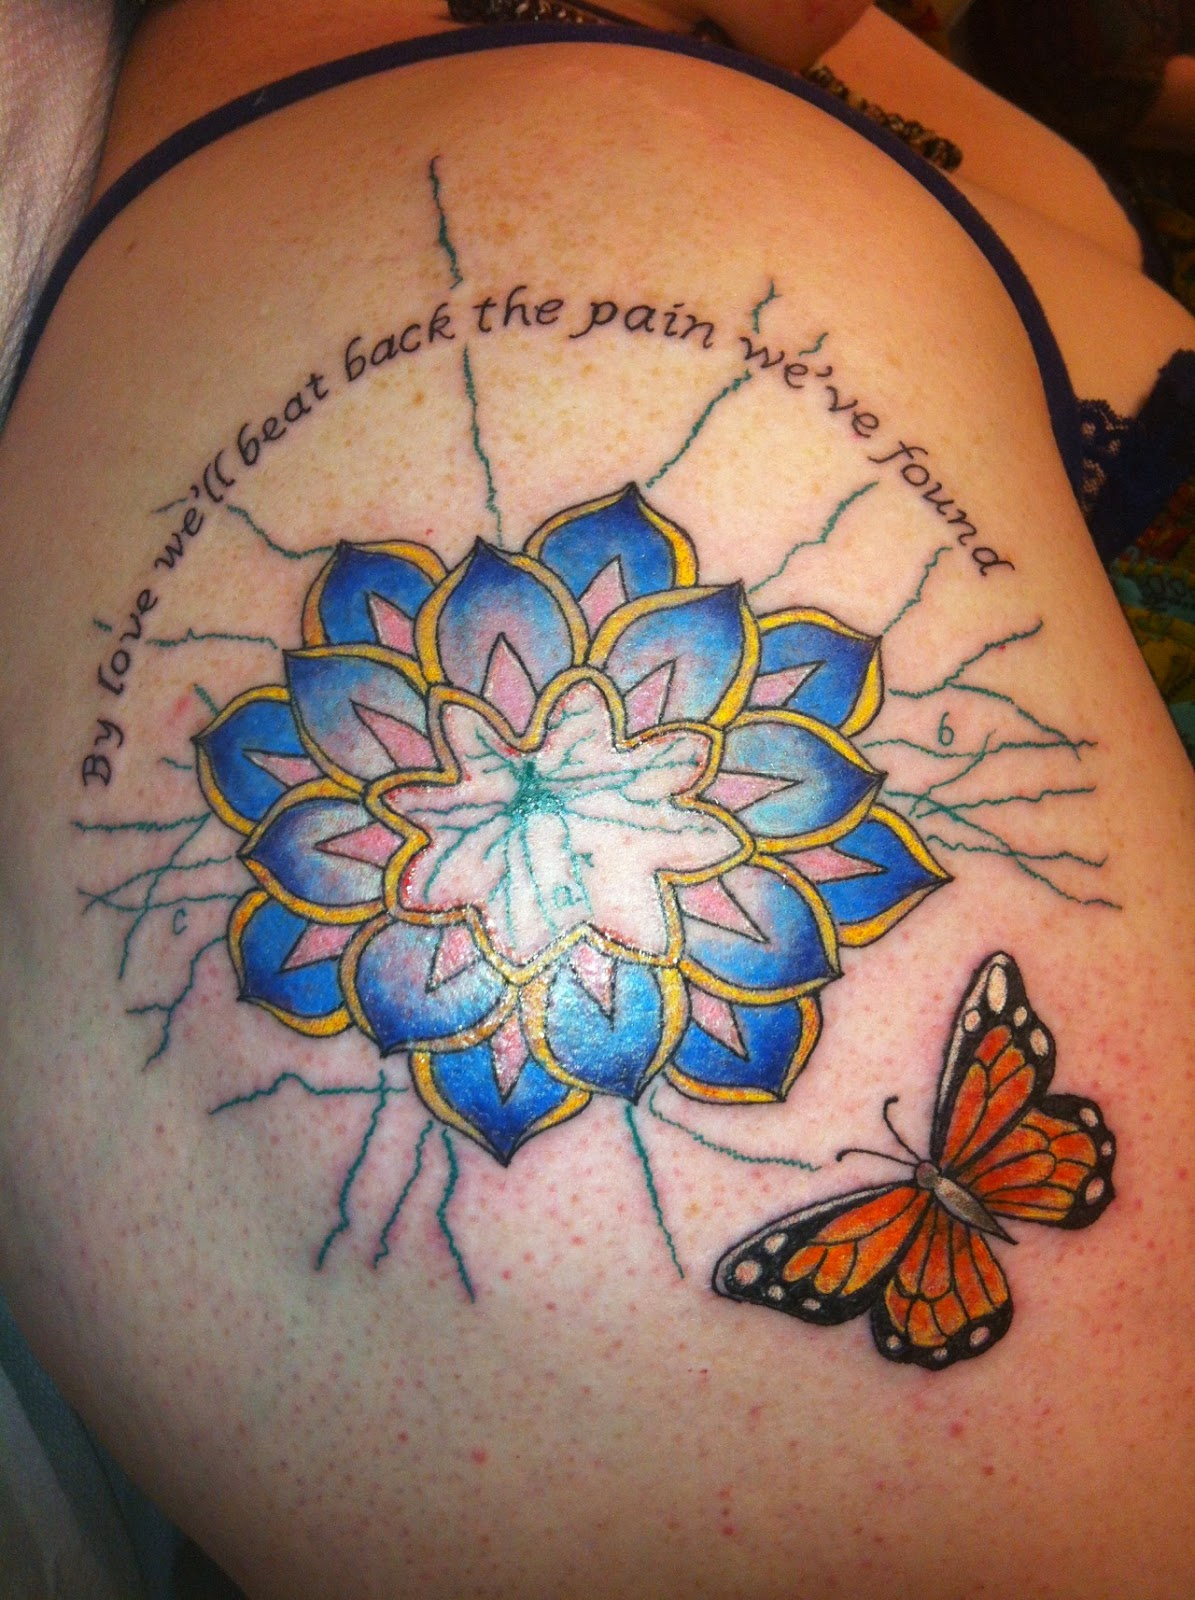 "Photograph: A close-up of a fresh tattoo. On the top are the words ""By love we'll beat back the pain we've found."" The center is a stylized lotus flower in blue and pink, outlined in yellow. Behind the lotus is a linework drawing of a neuron in green. On the bottom is an orange monarch butterfly."